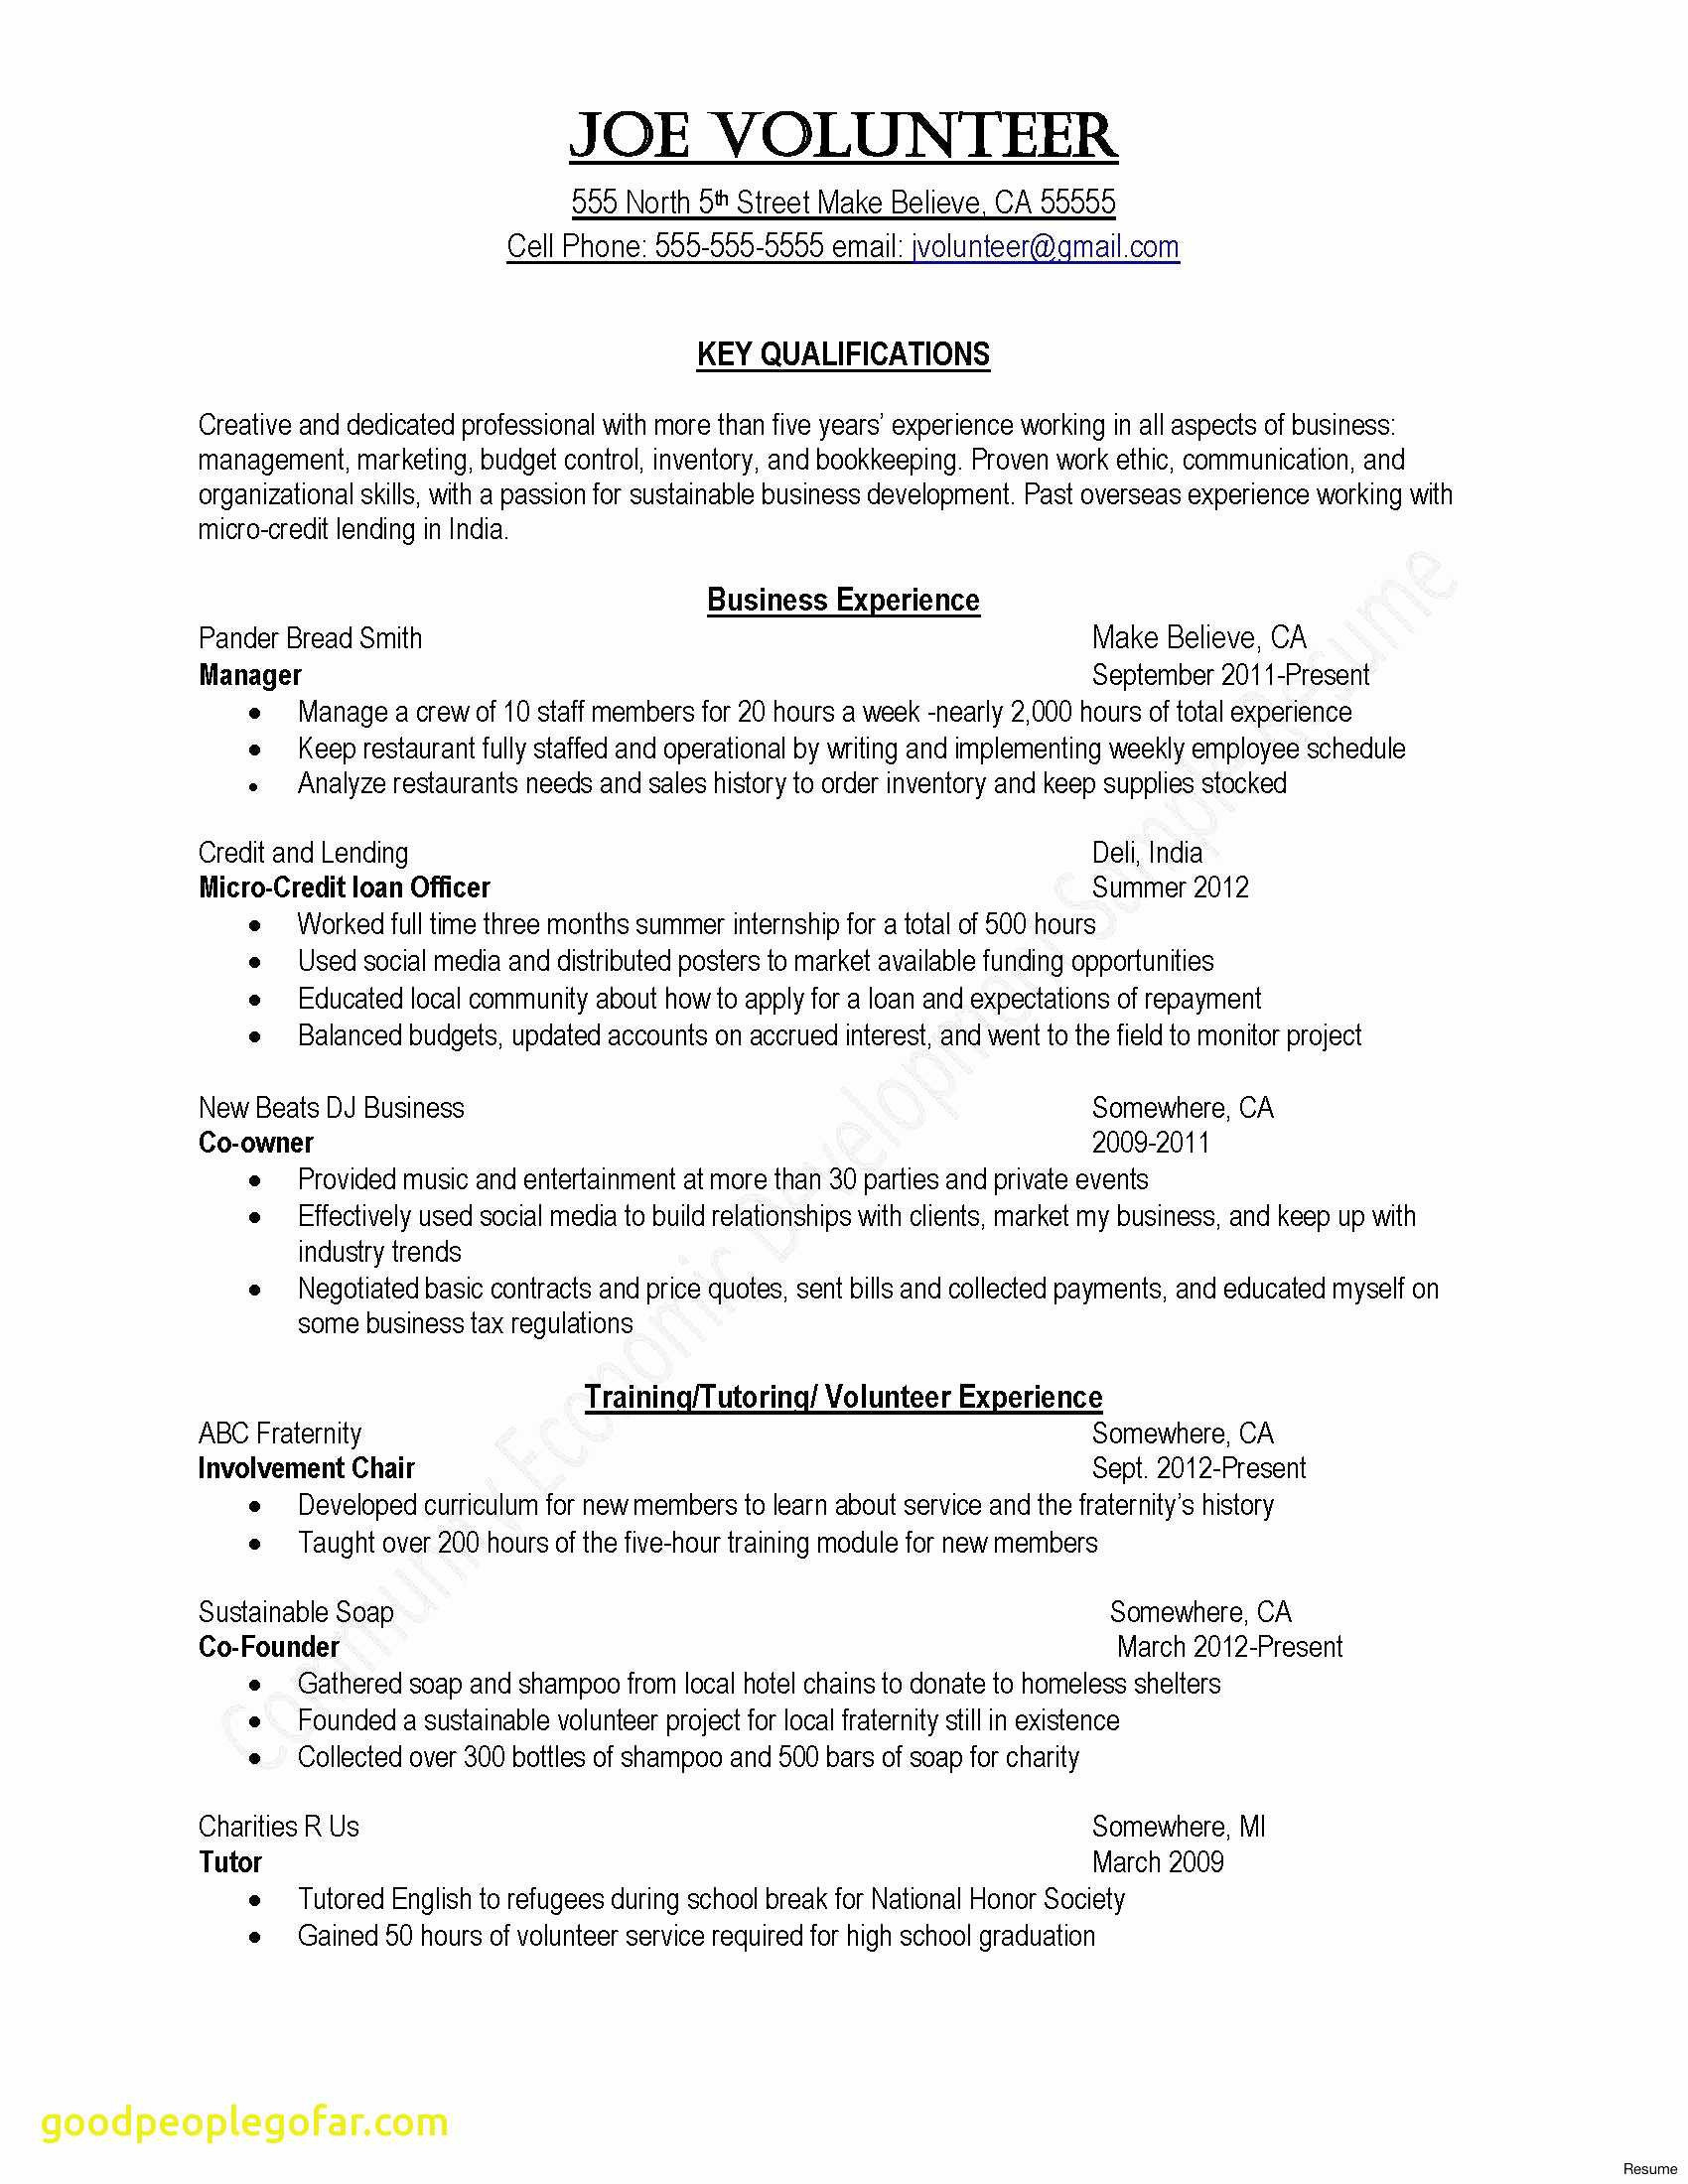 Middle School Resume Template - Awesome High School Resume Template for College Application